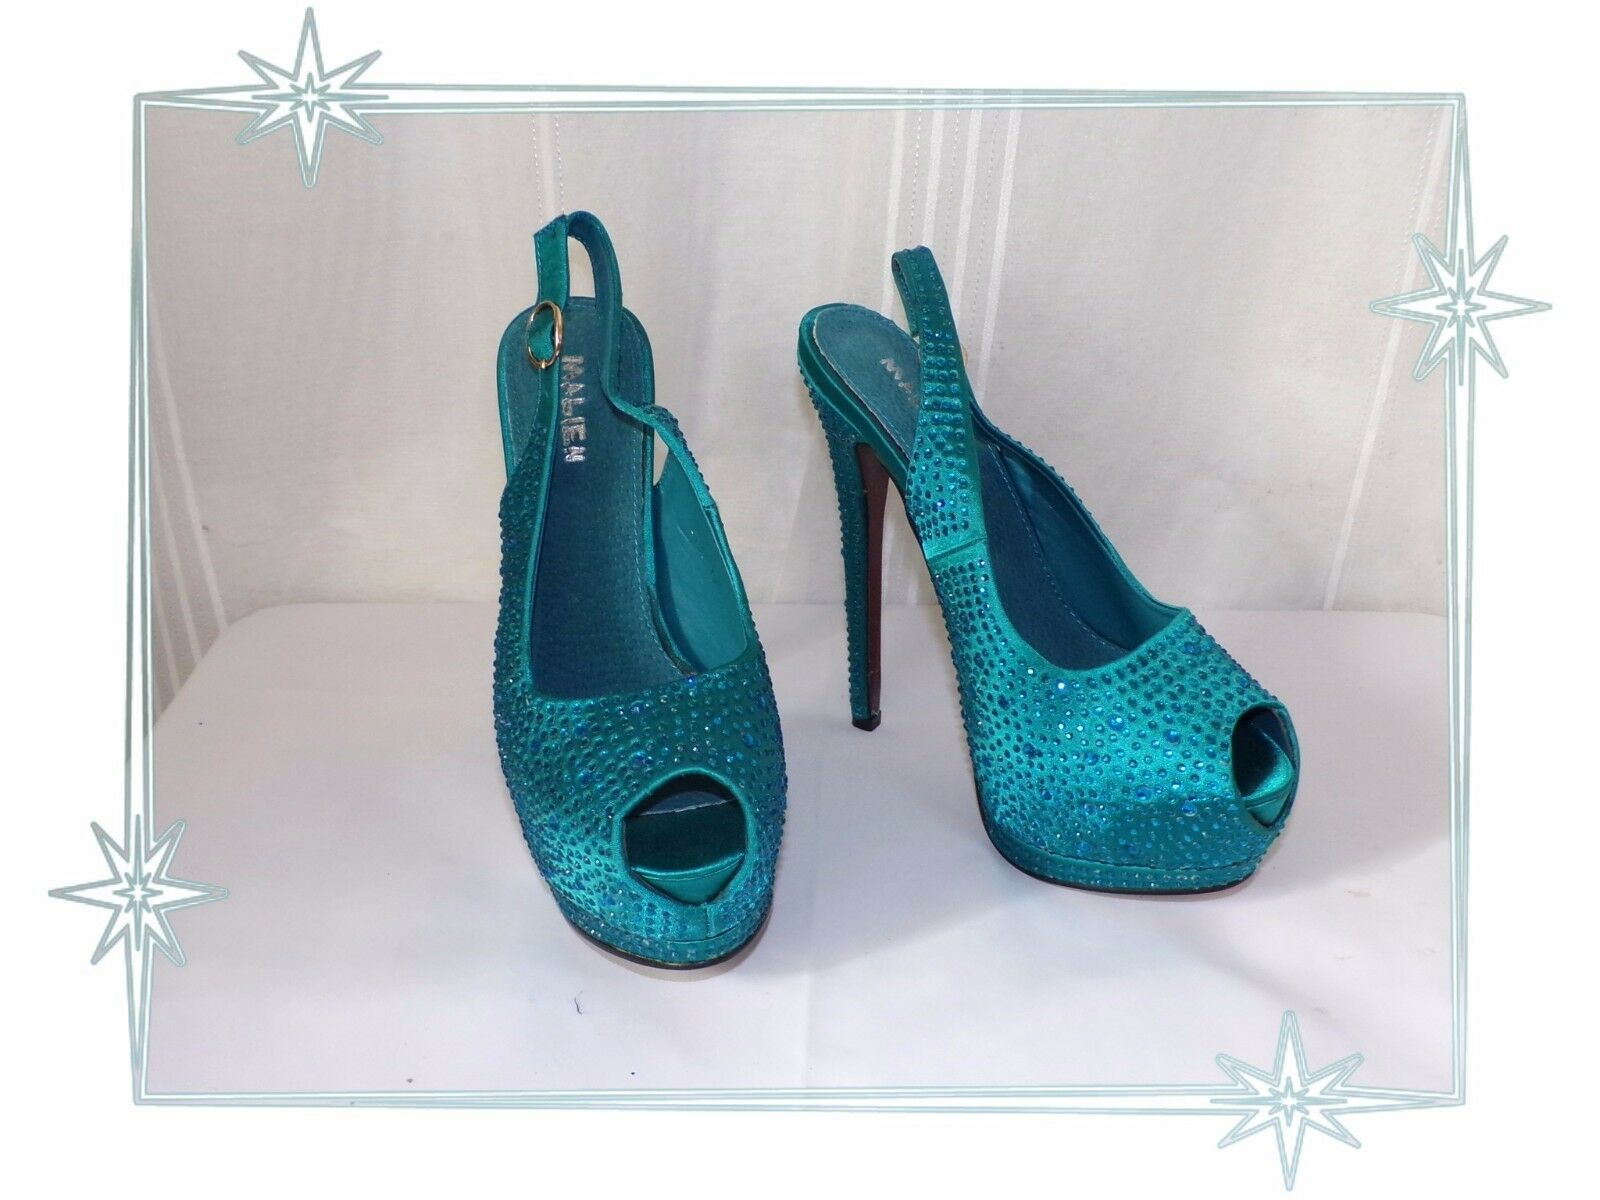 F - Magnifiques zapatos Talons Plateformes azul azul azul Turquoise Strass Malien P 39 8bb625